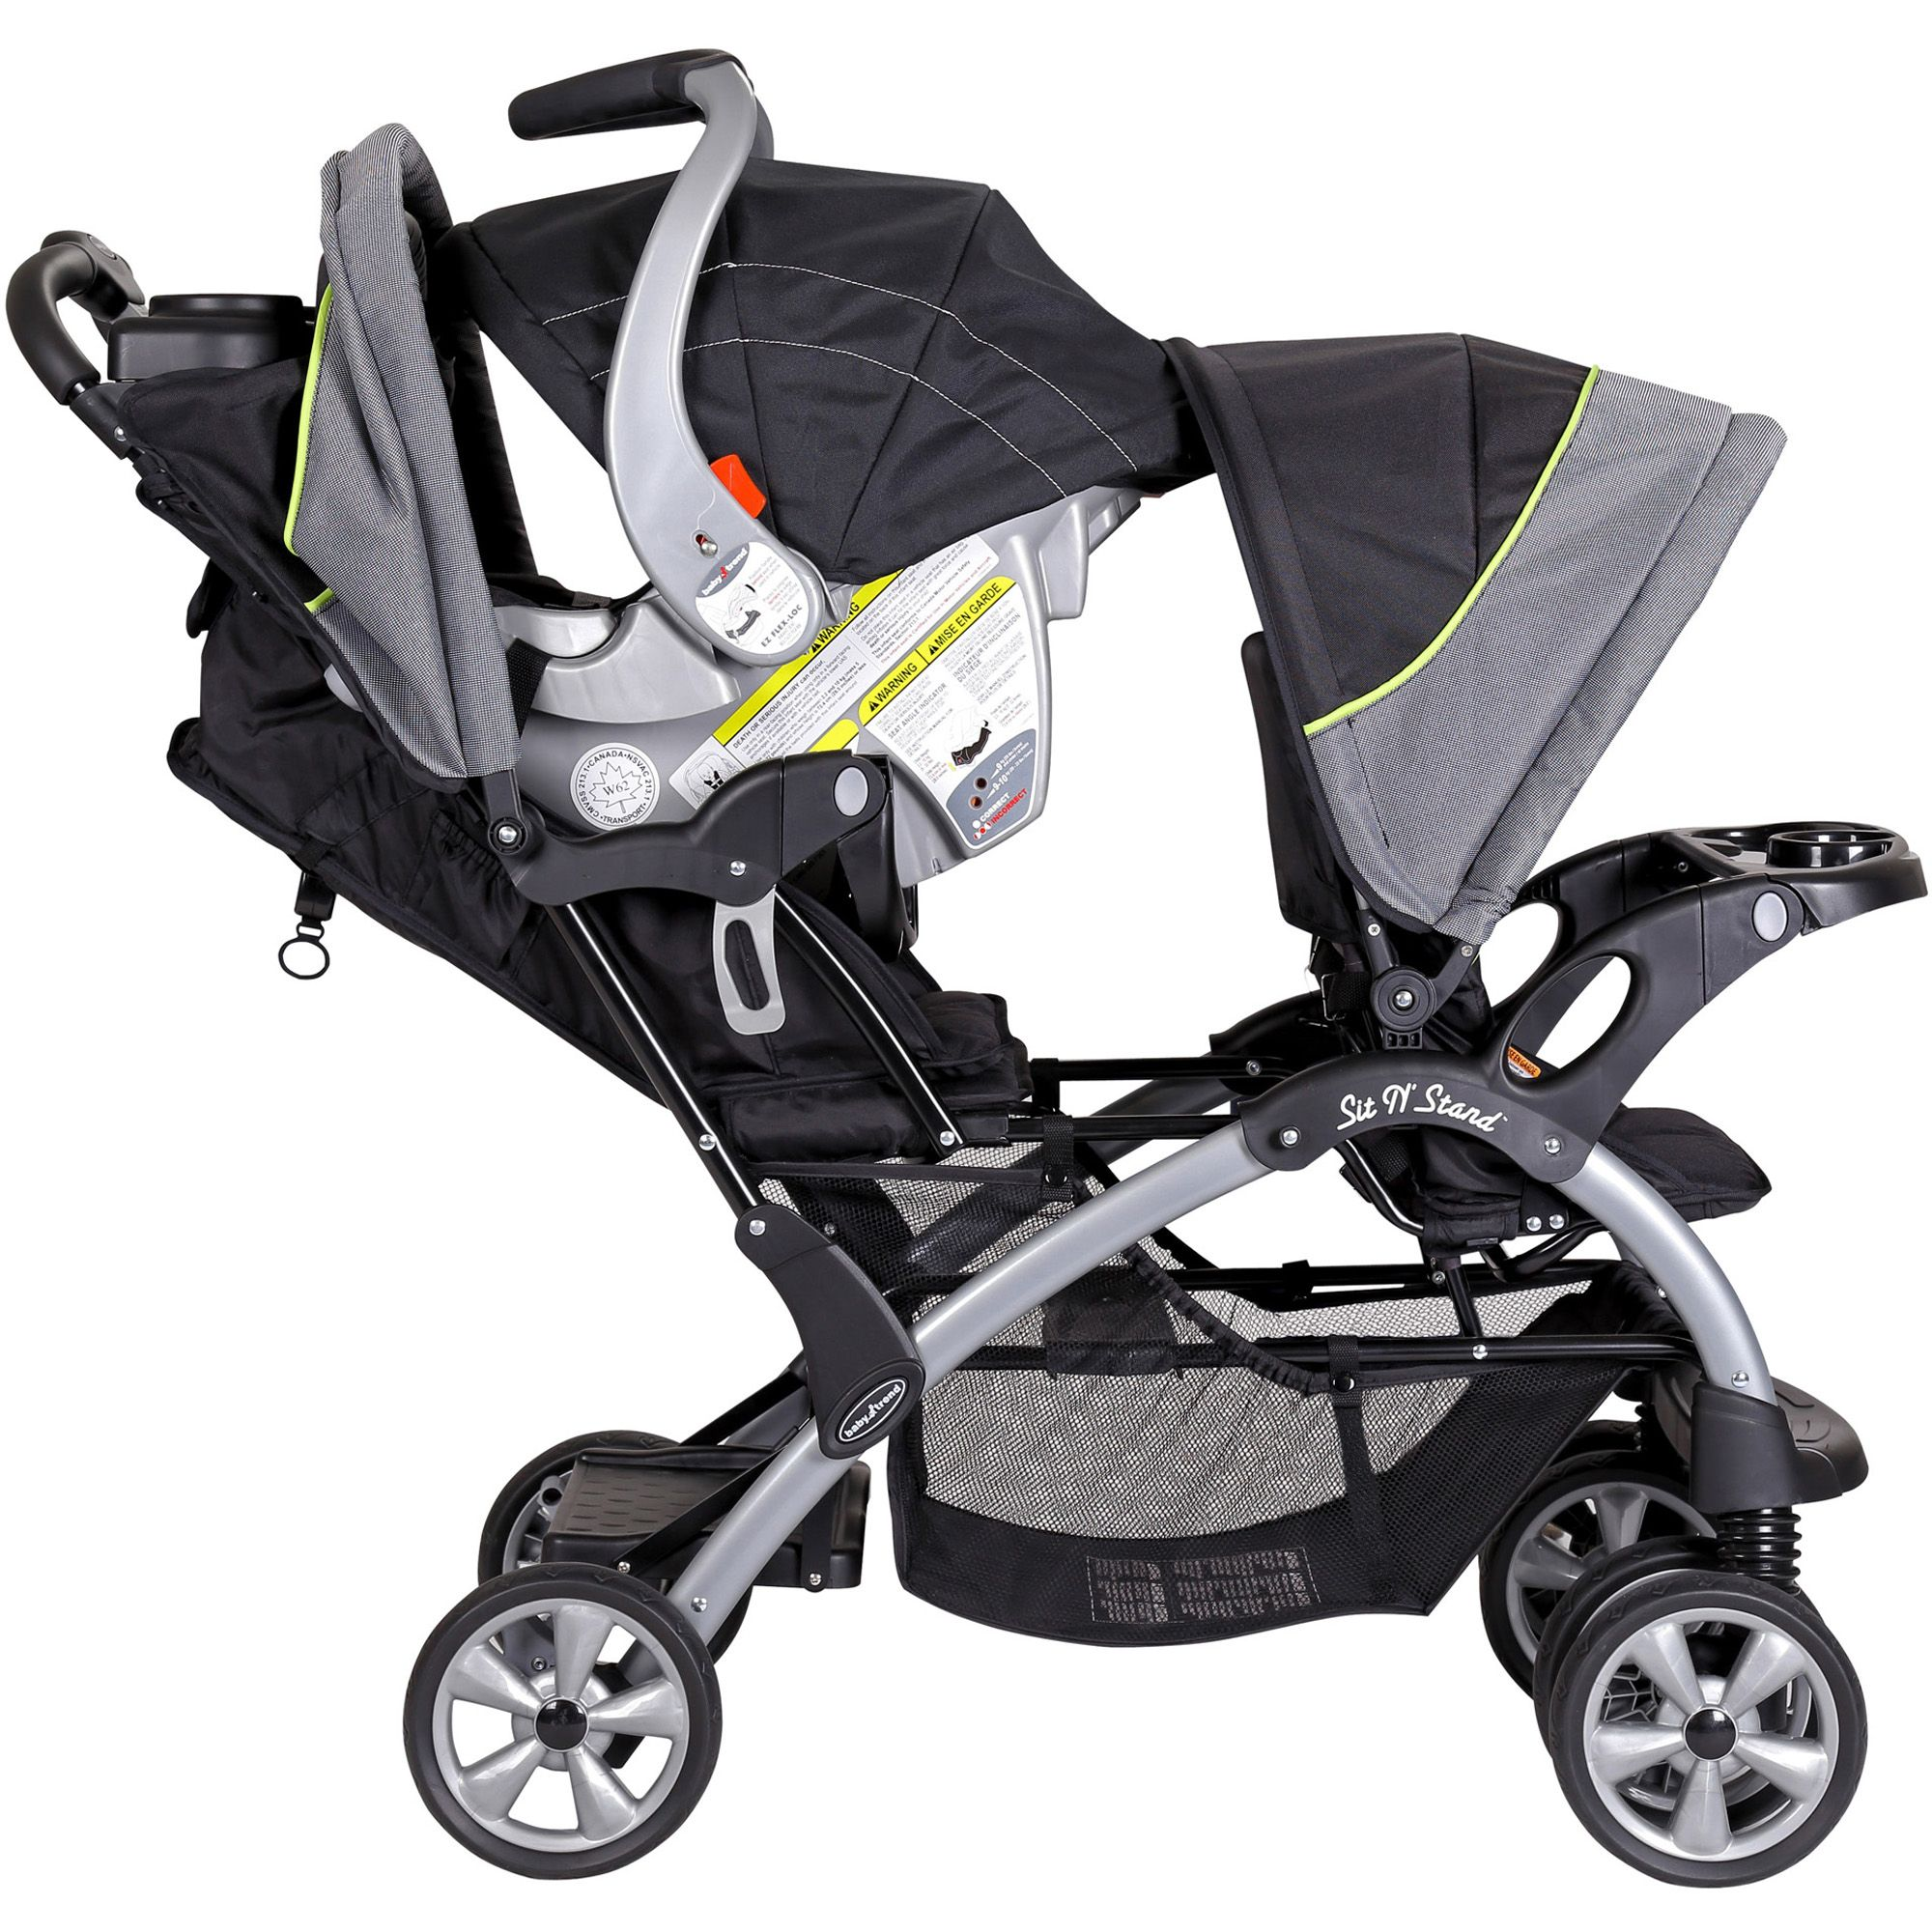 29+ Baby trend double stroller parts info